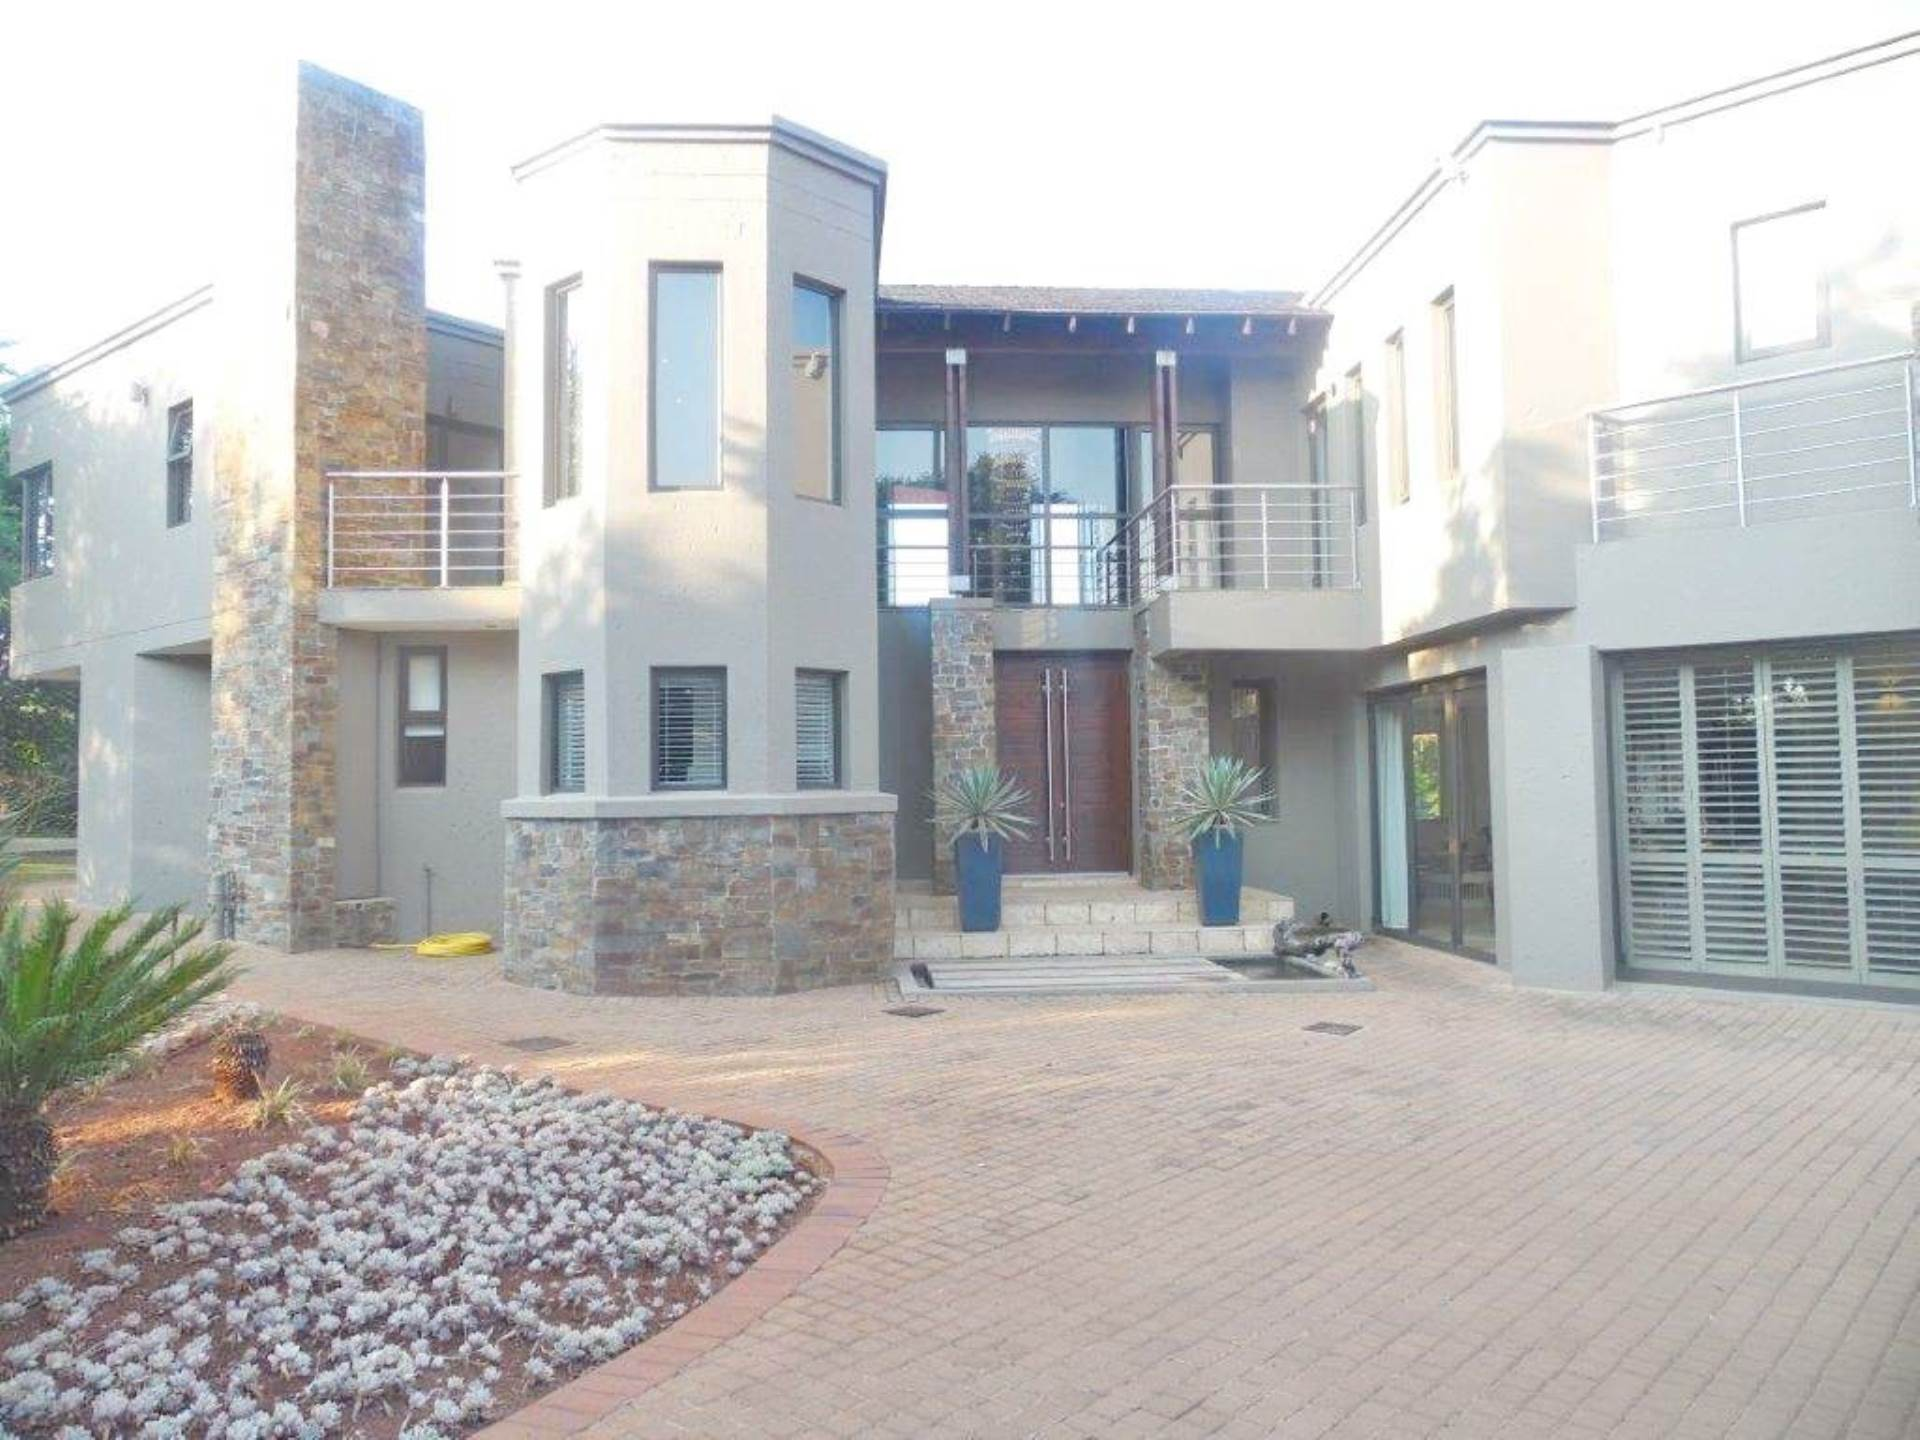 Property and Houses for sale in Mooikloof Equestrian Estate, House, 5 Bedrooms - ZAR 9,500,000